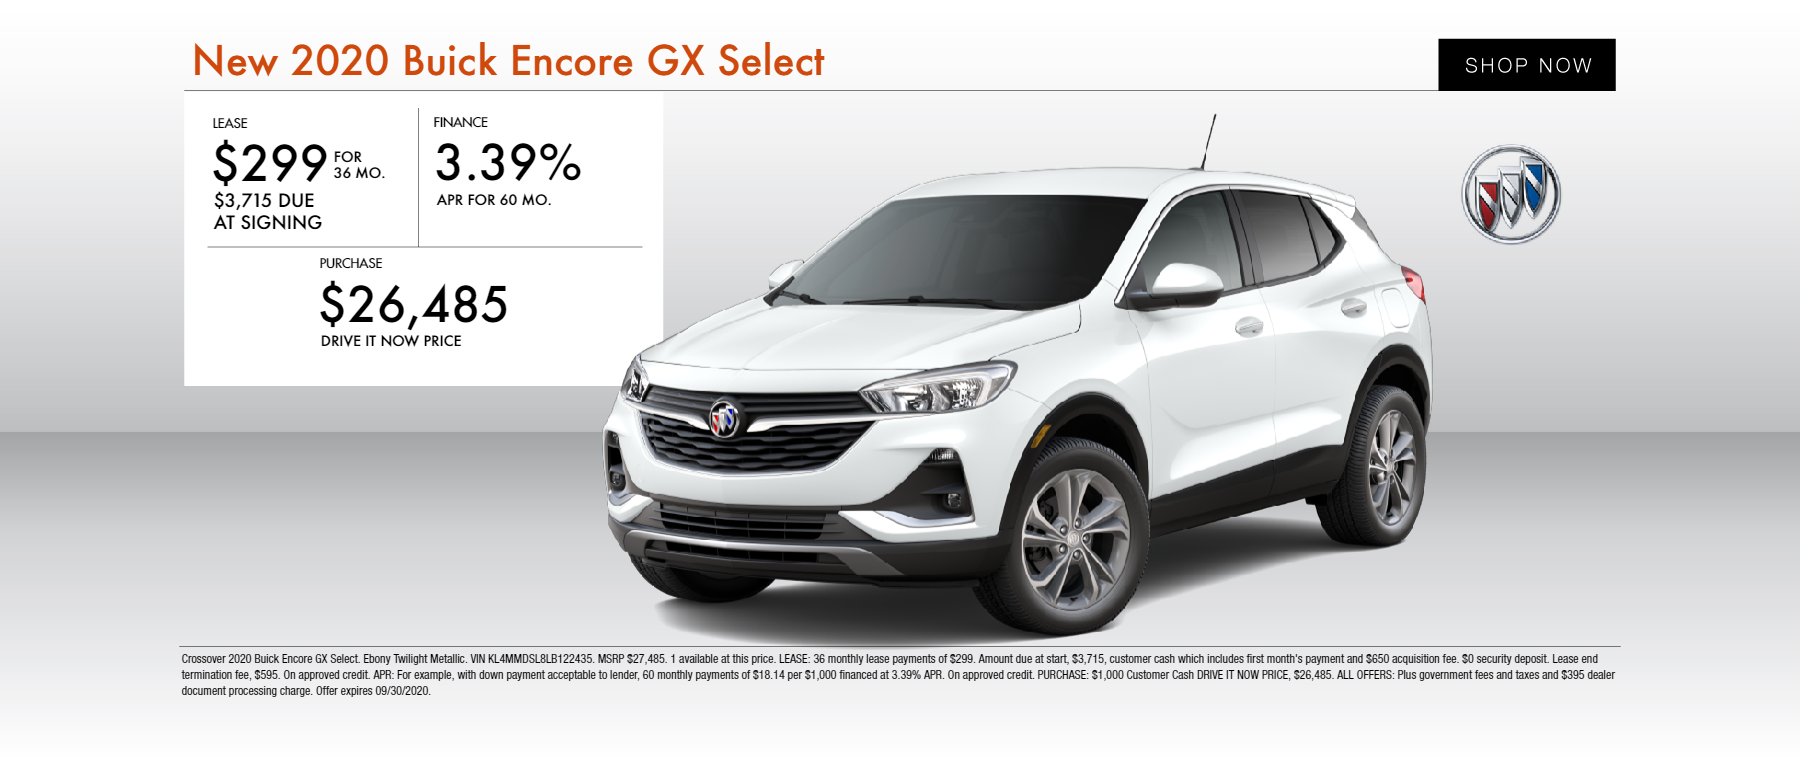 WF38503_website_1800 x 760_2020_Buick_Encore GX_Select_2